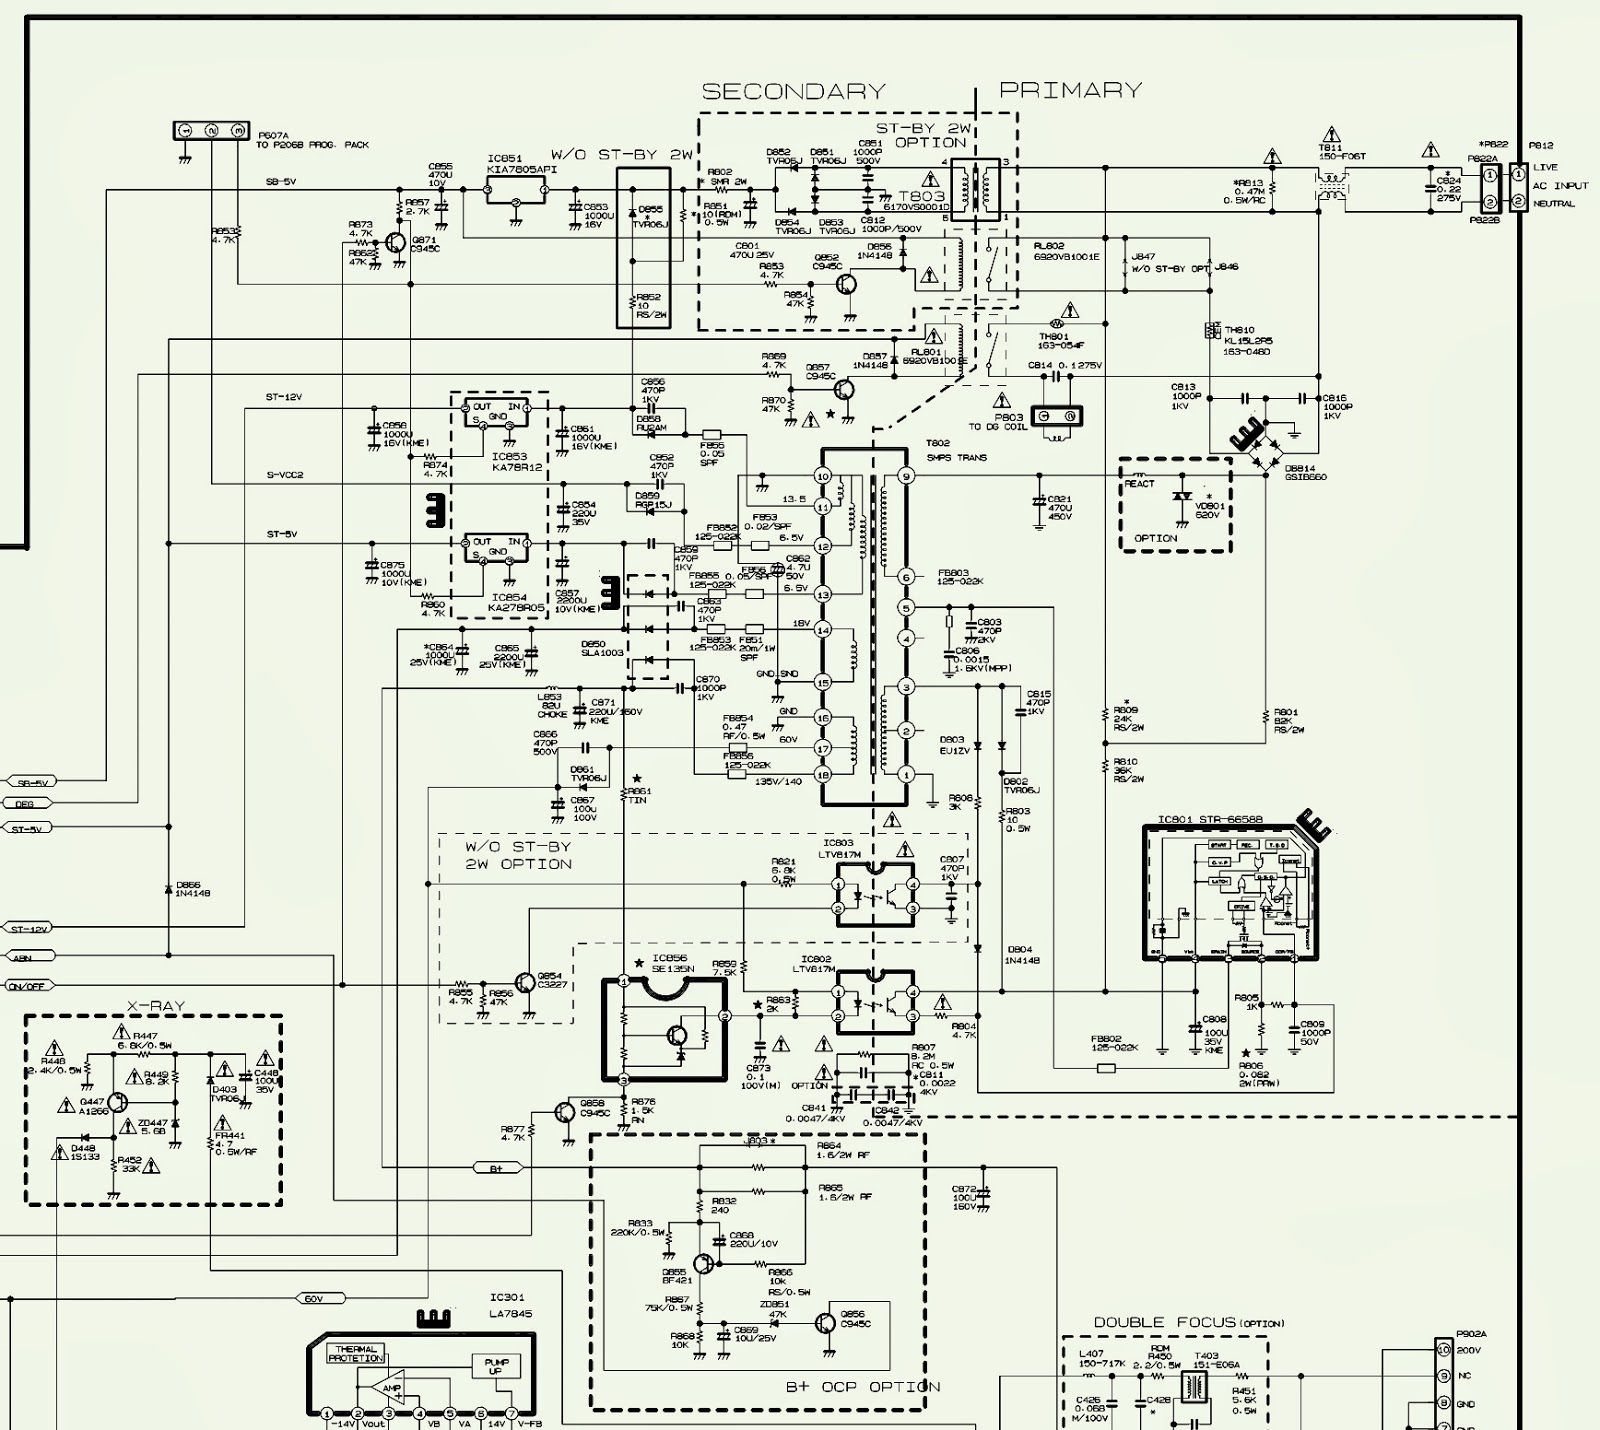 small resolution of sansui tv circuit diagram free download circuit diagram images samsung tv circuit diagram group picture image by tag